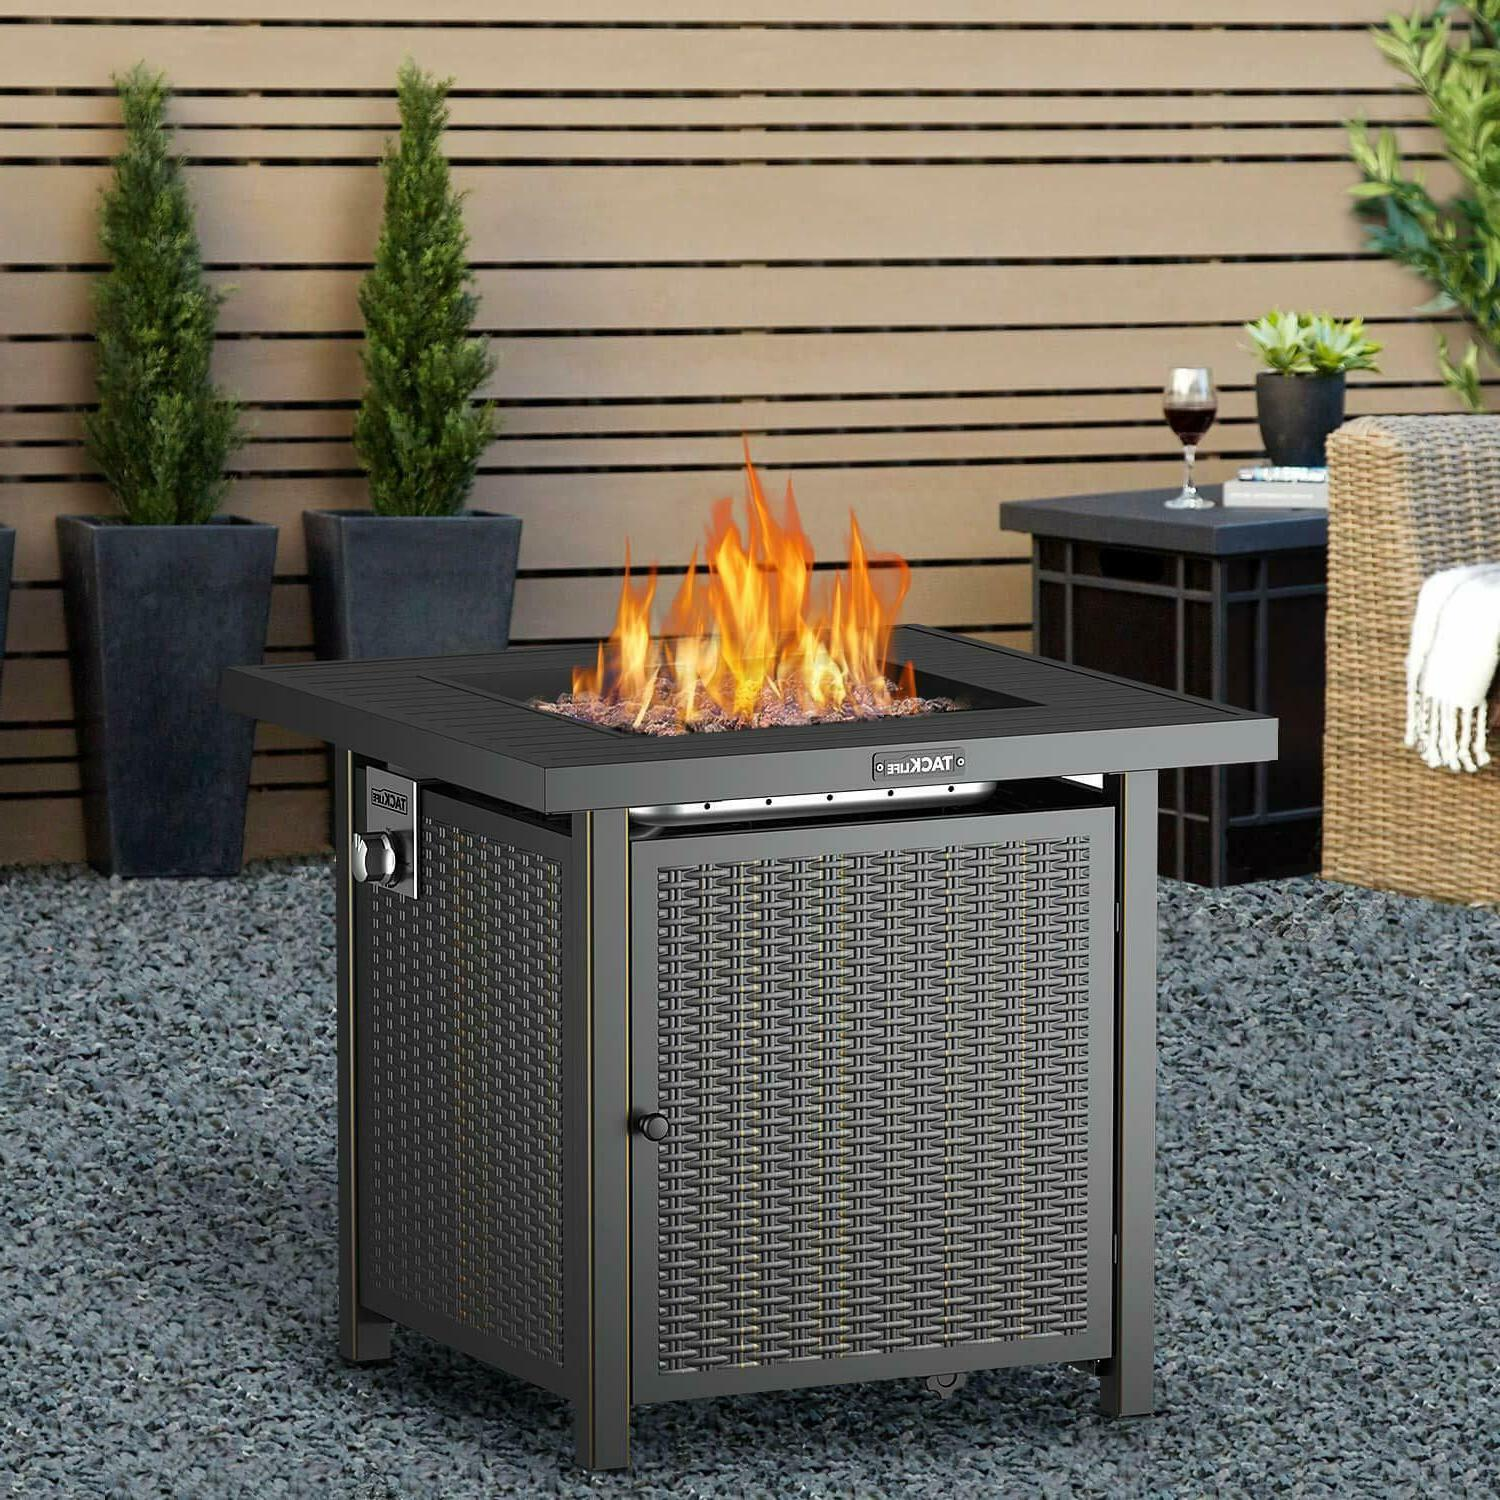 BBQ Propane Fire Pit Table Garden Cooking Party Camping Stove